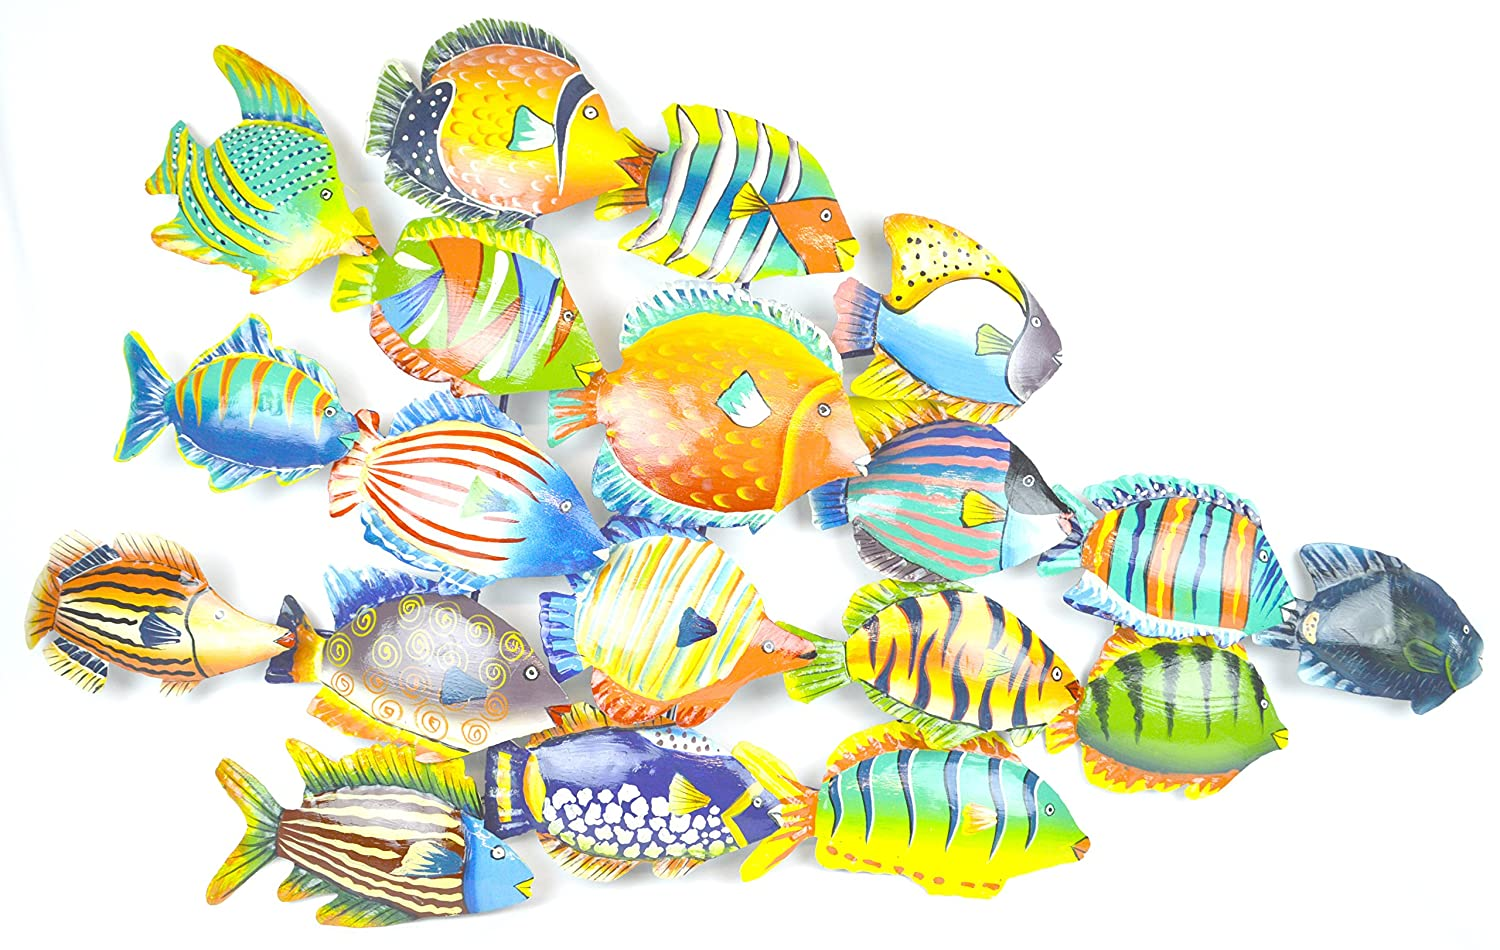 Fish metal wall art unique and colorful for School of fish metal wall art